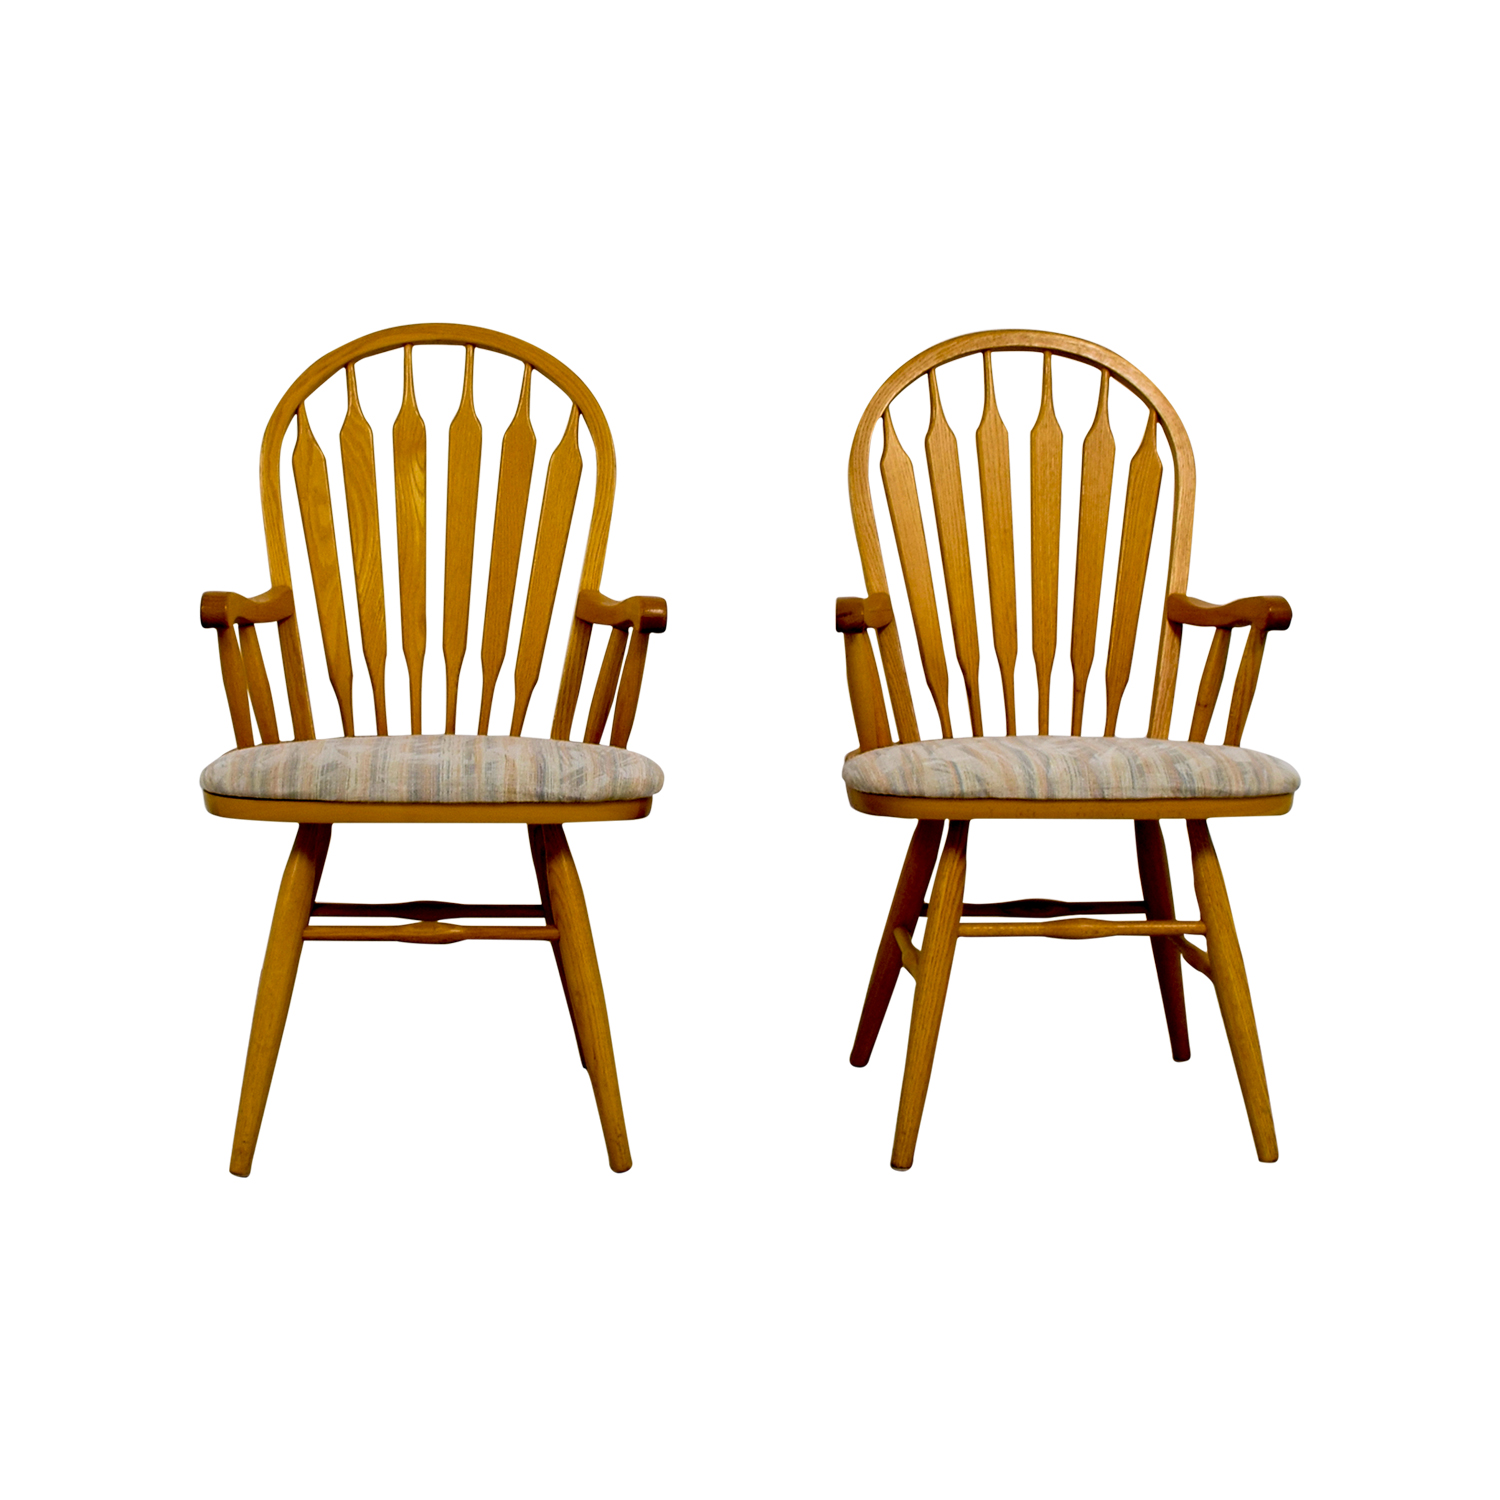 buy Dinaire Wooden Arm Chairs Dinaire